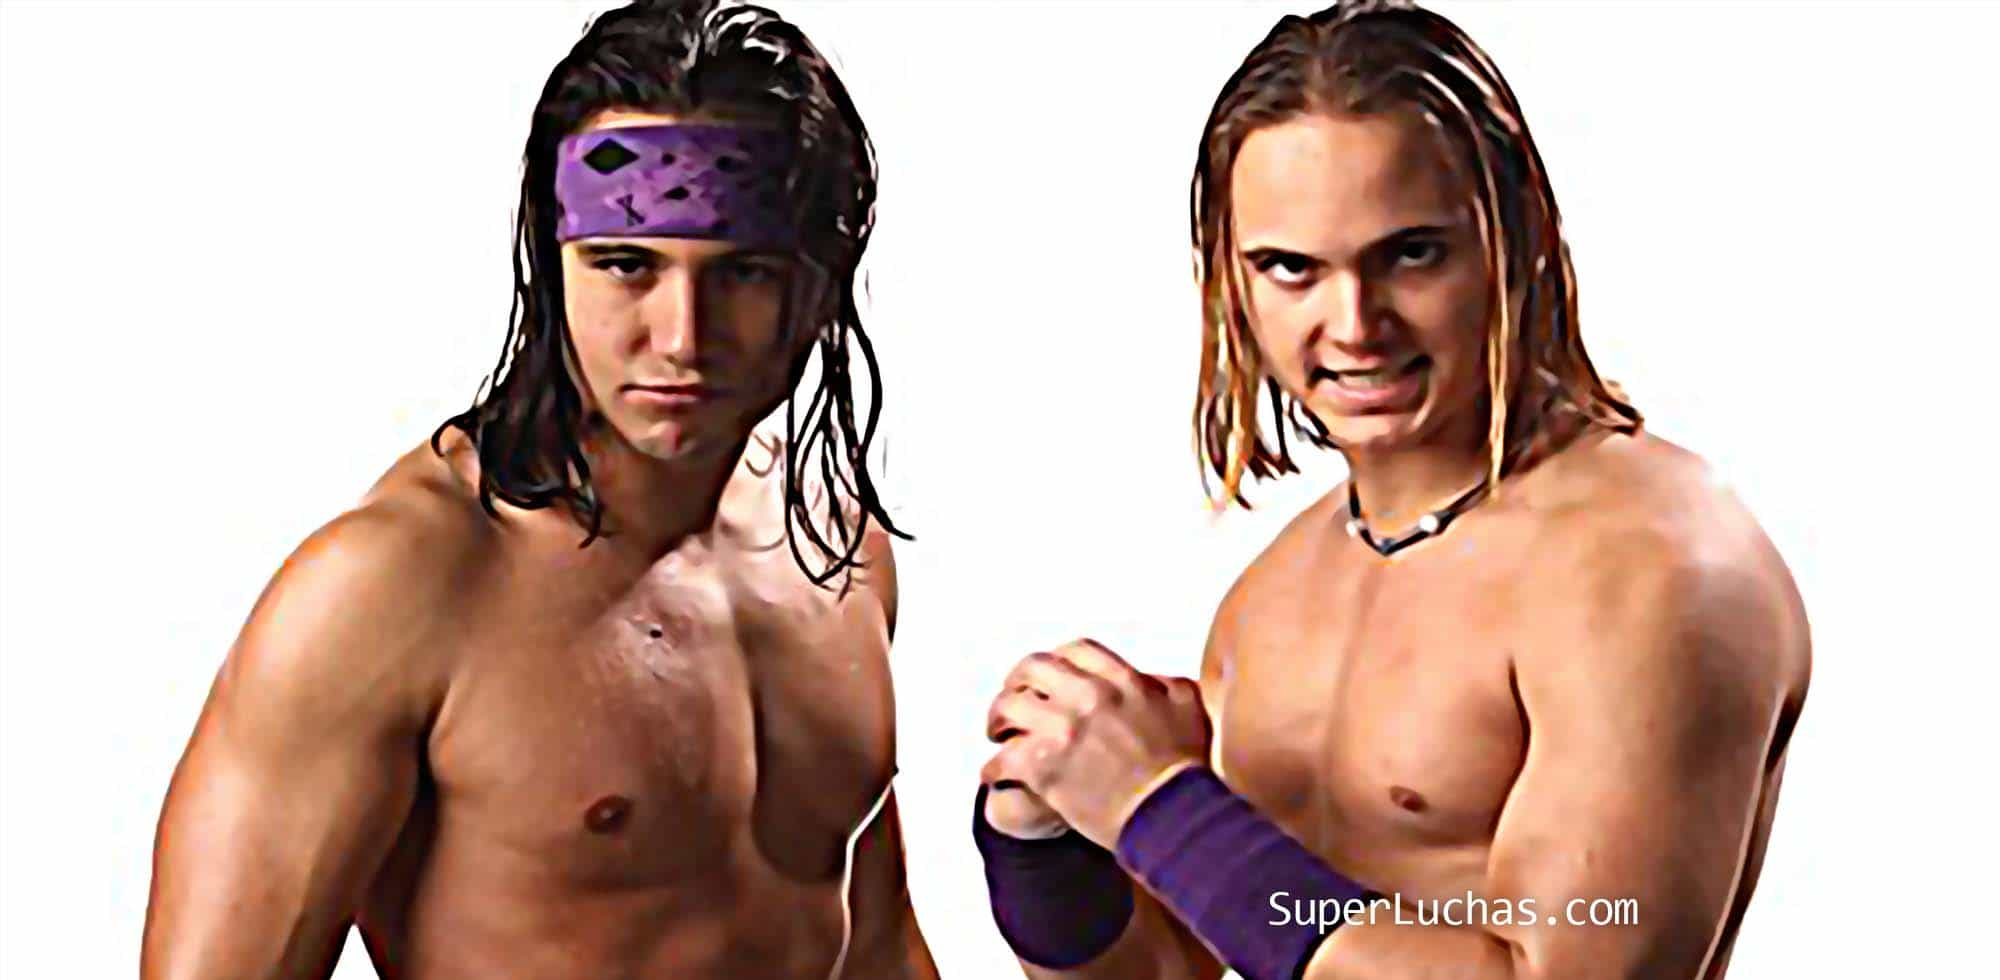 The Young Bucks Respond To Edge And Christian If They See Themselves In Wwe Superfights